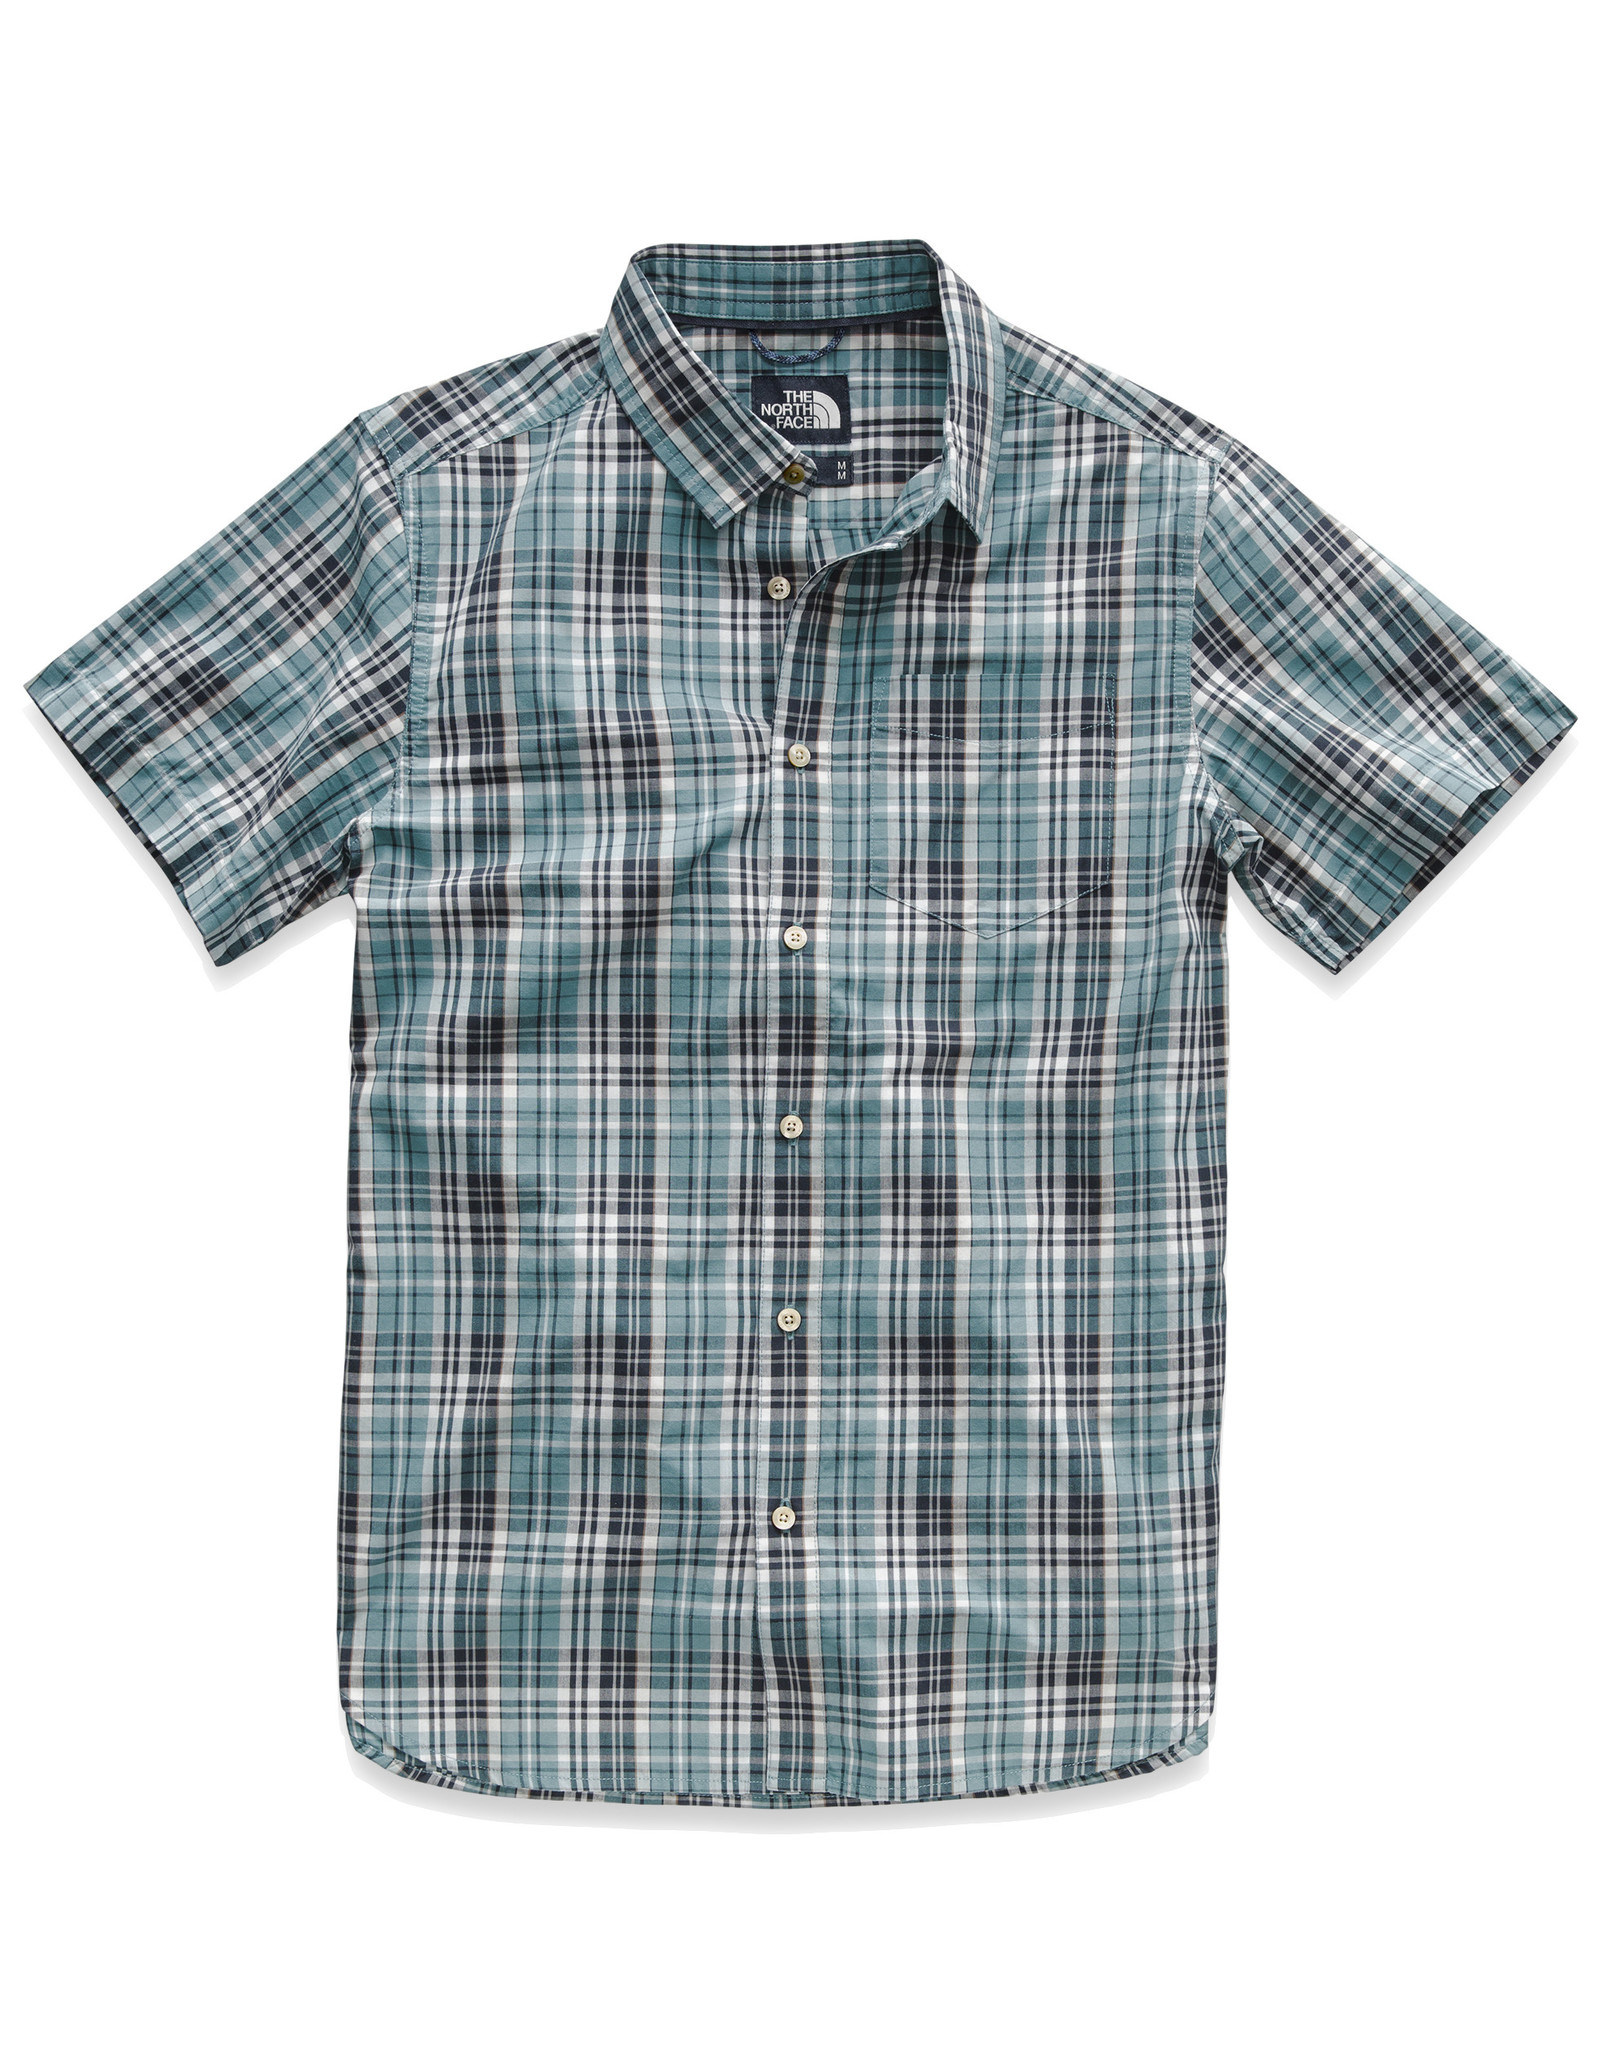 The North Face The North Face Men's S/S Hammetts Shirt - S2019